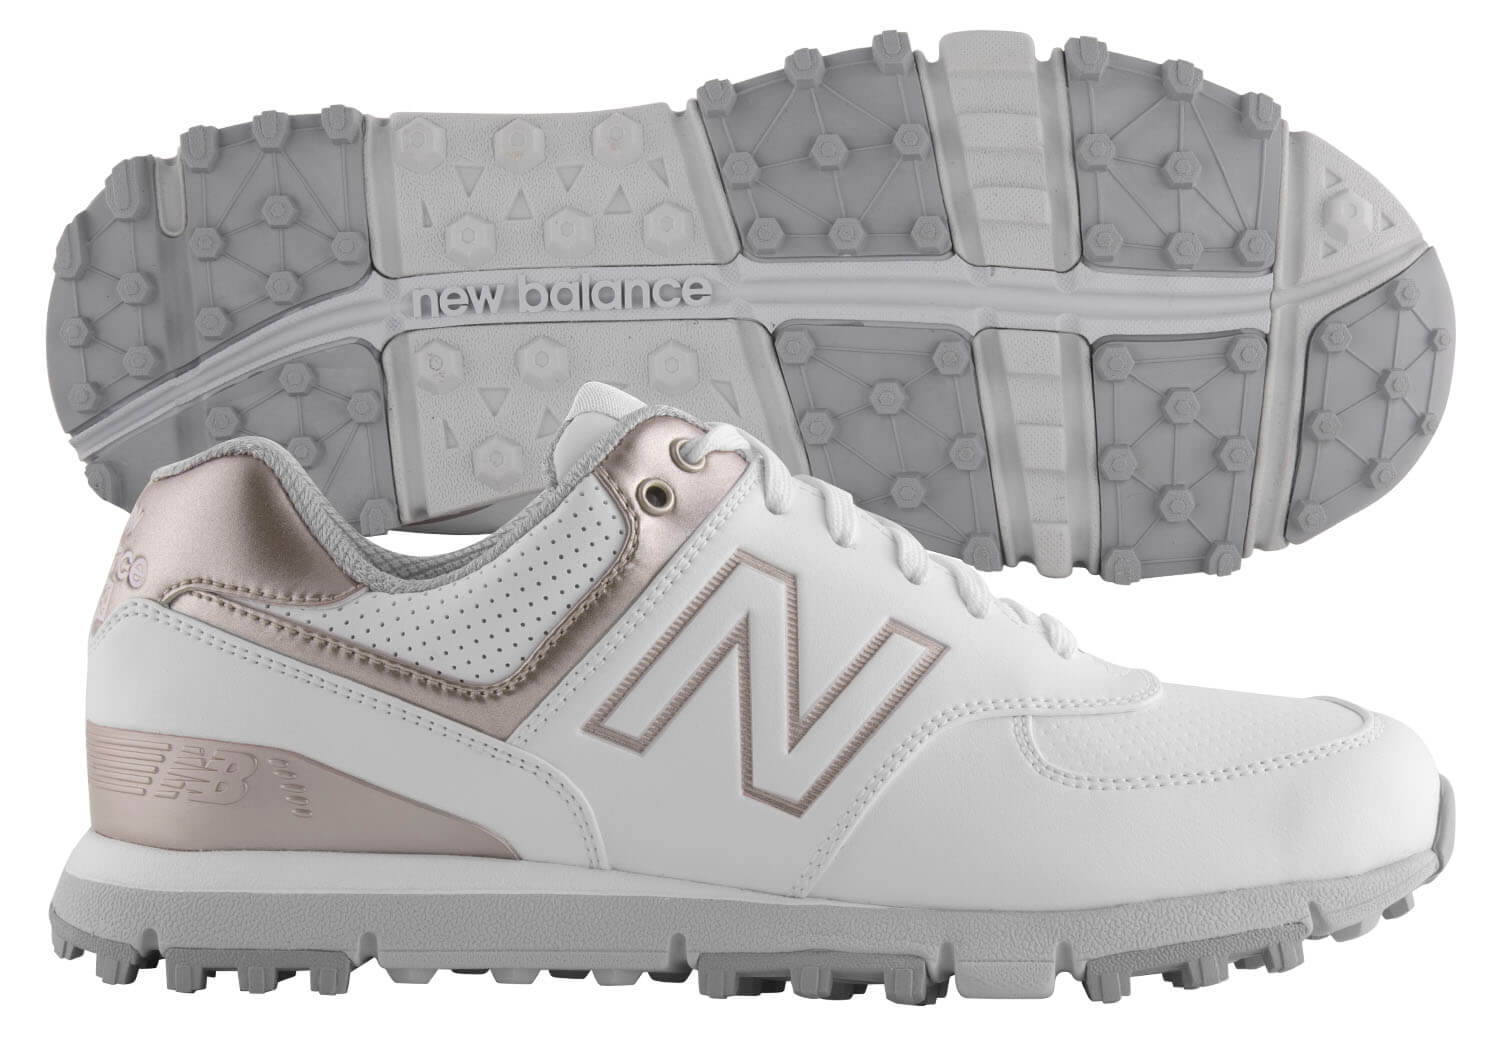 64f8309e68c7 Details about New Balance Women s 574 SL Golf Shoes NBGW574WRG White Rose  Gold Ladies New